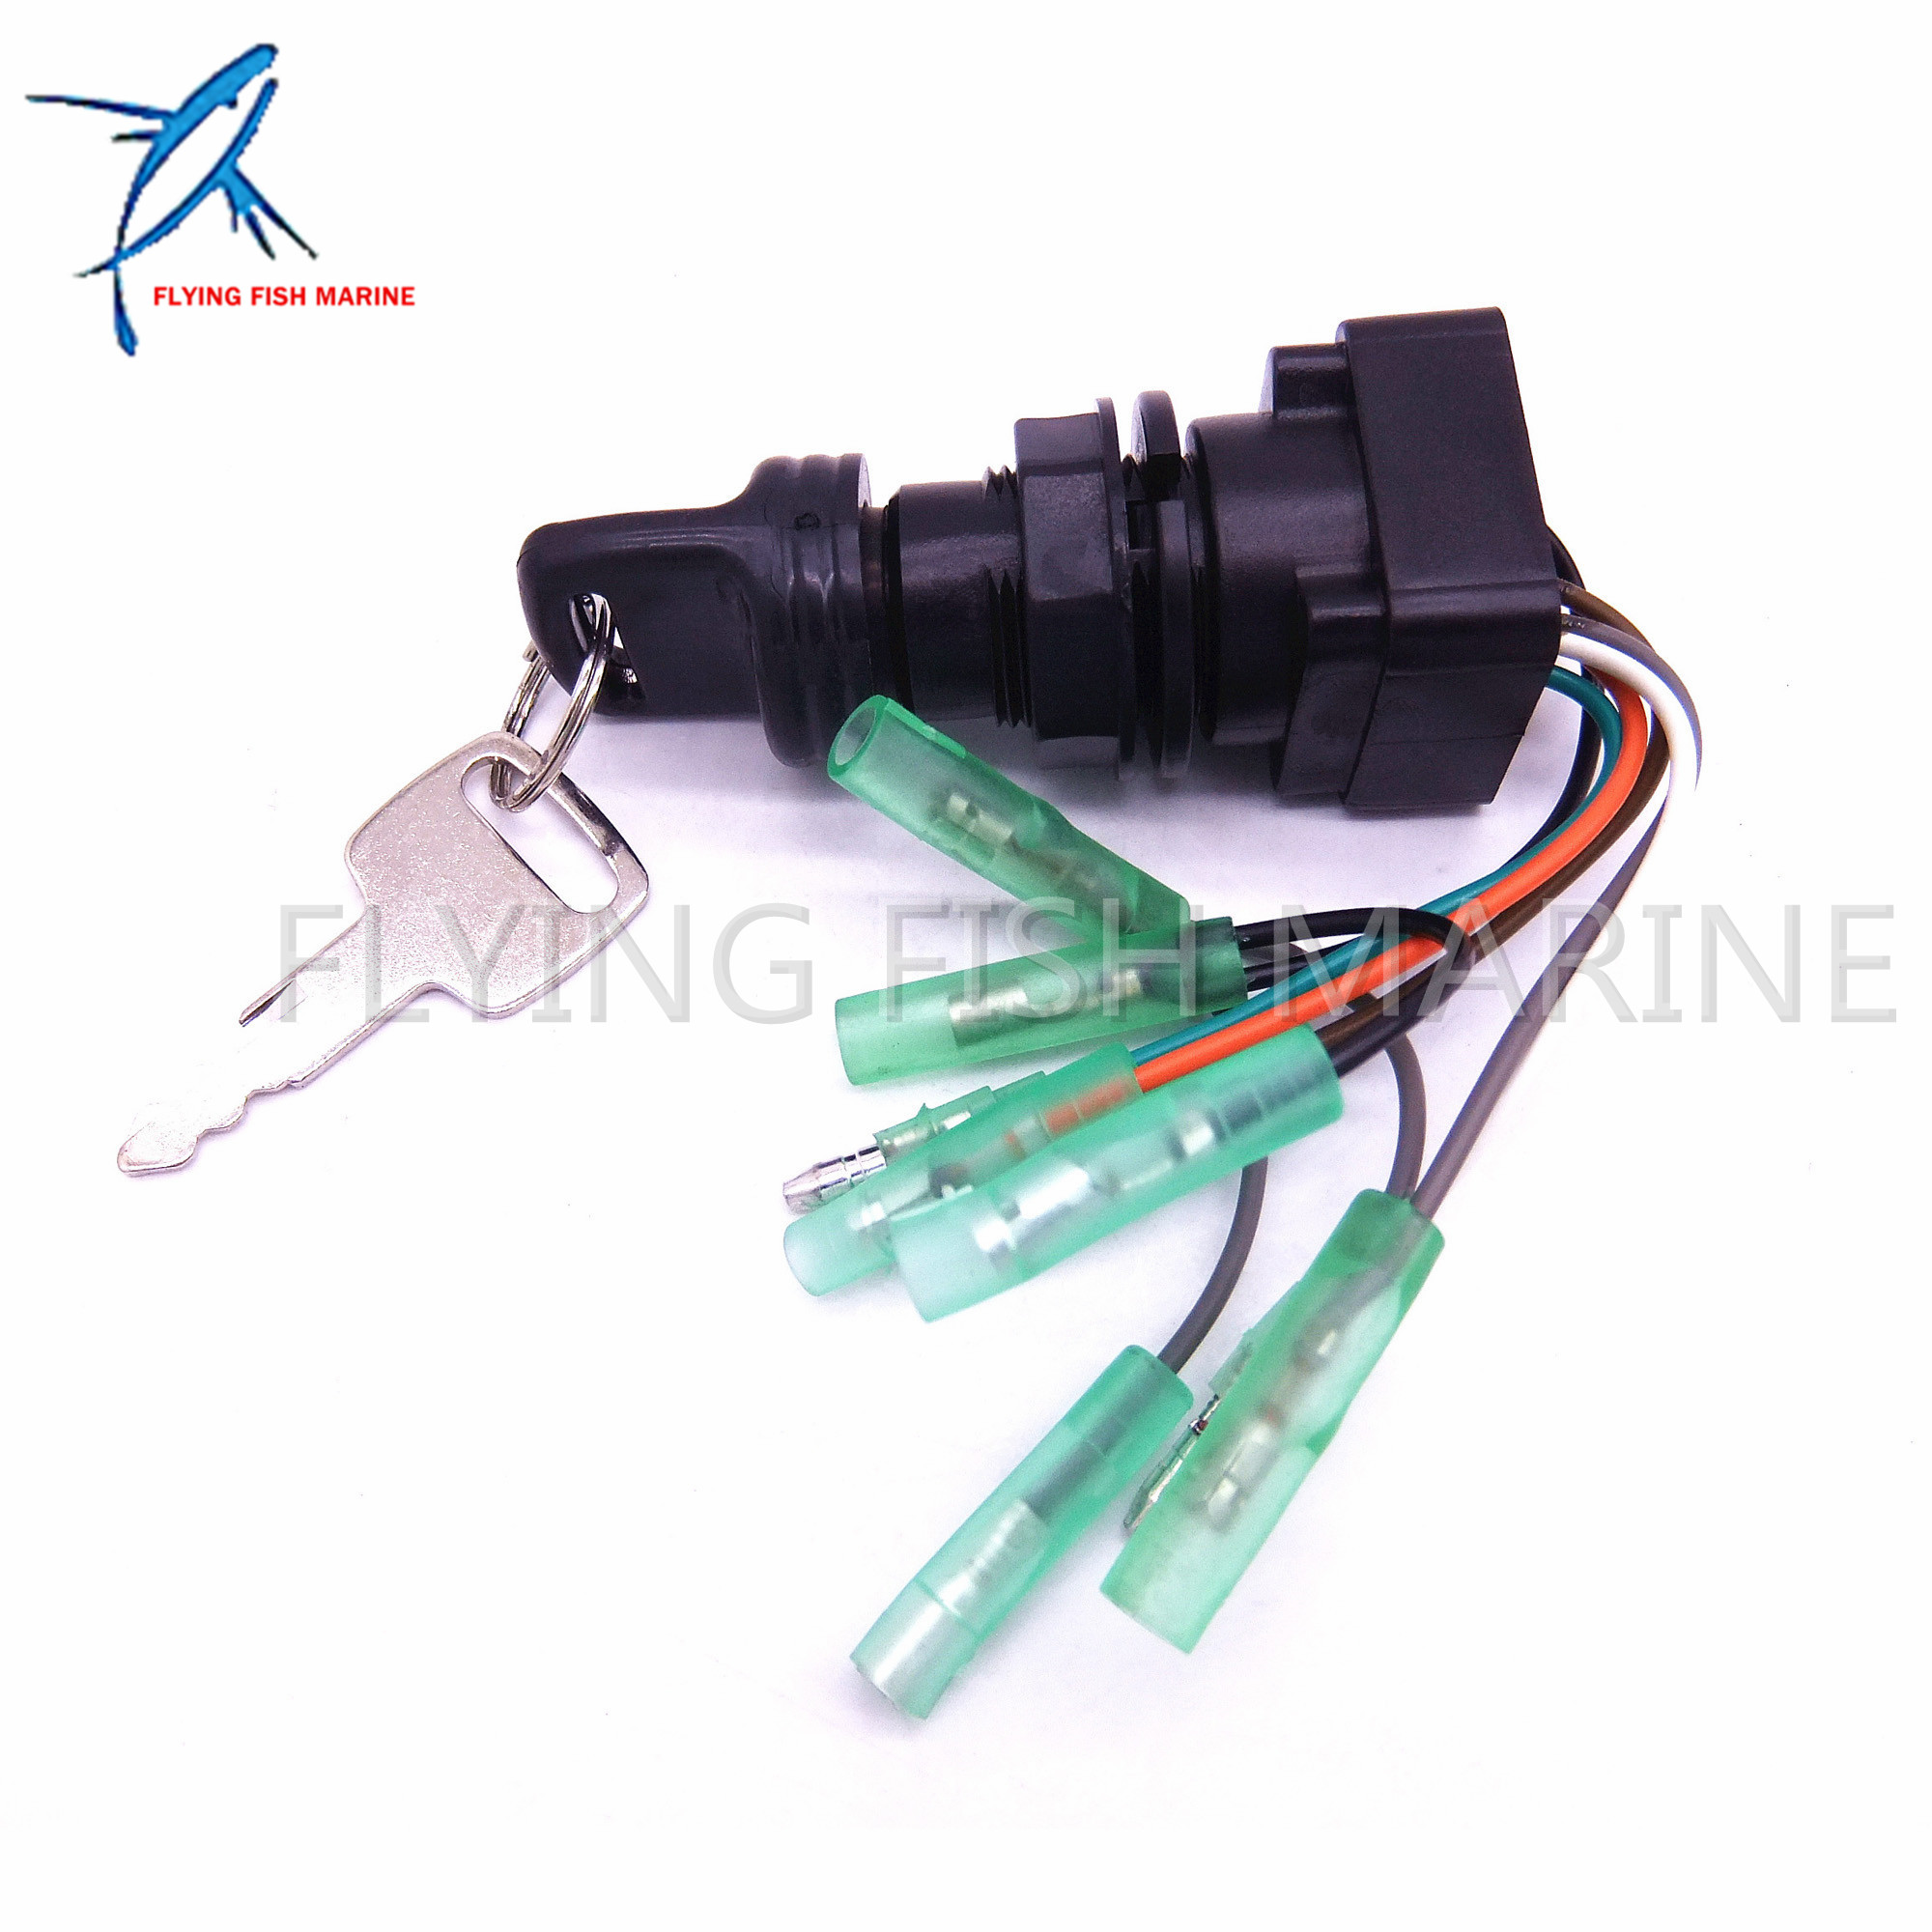 Wiring Diagram Furthermore Boat Ignition Switch Wiring Diagram